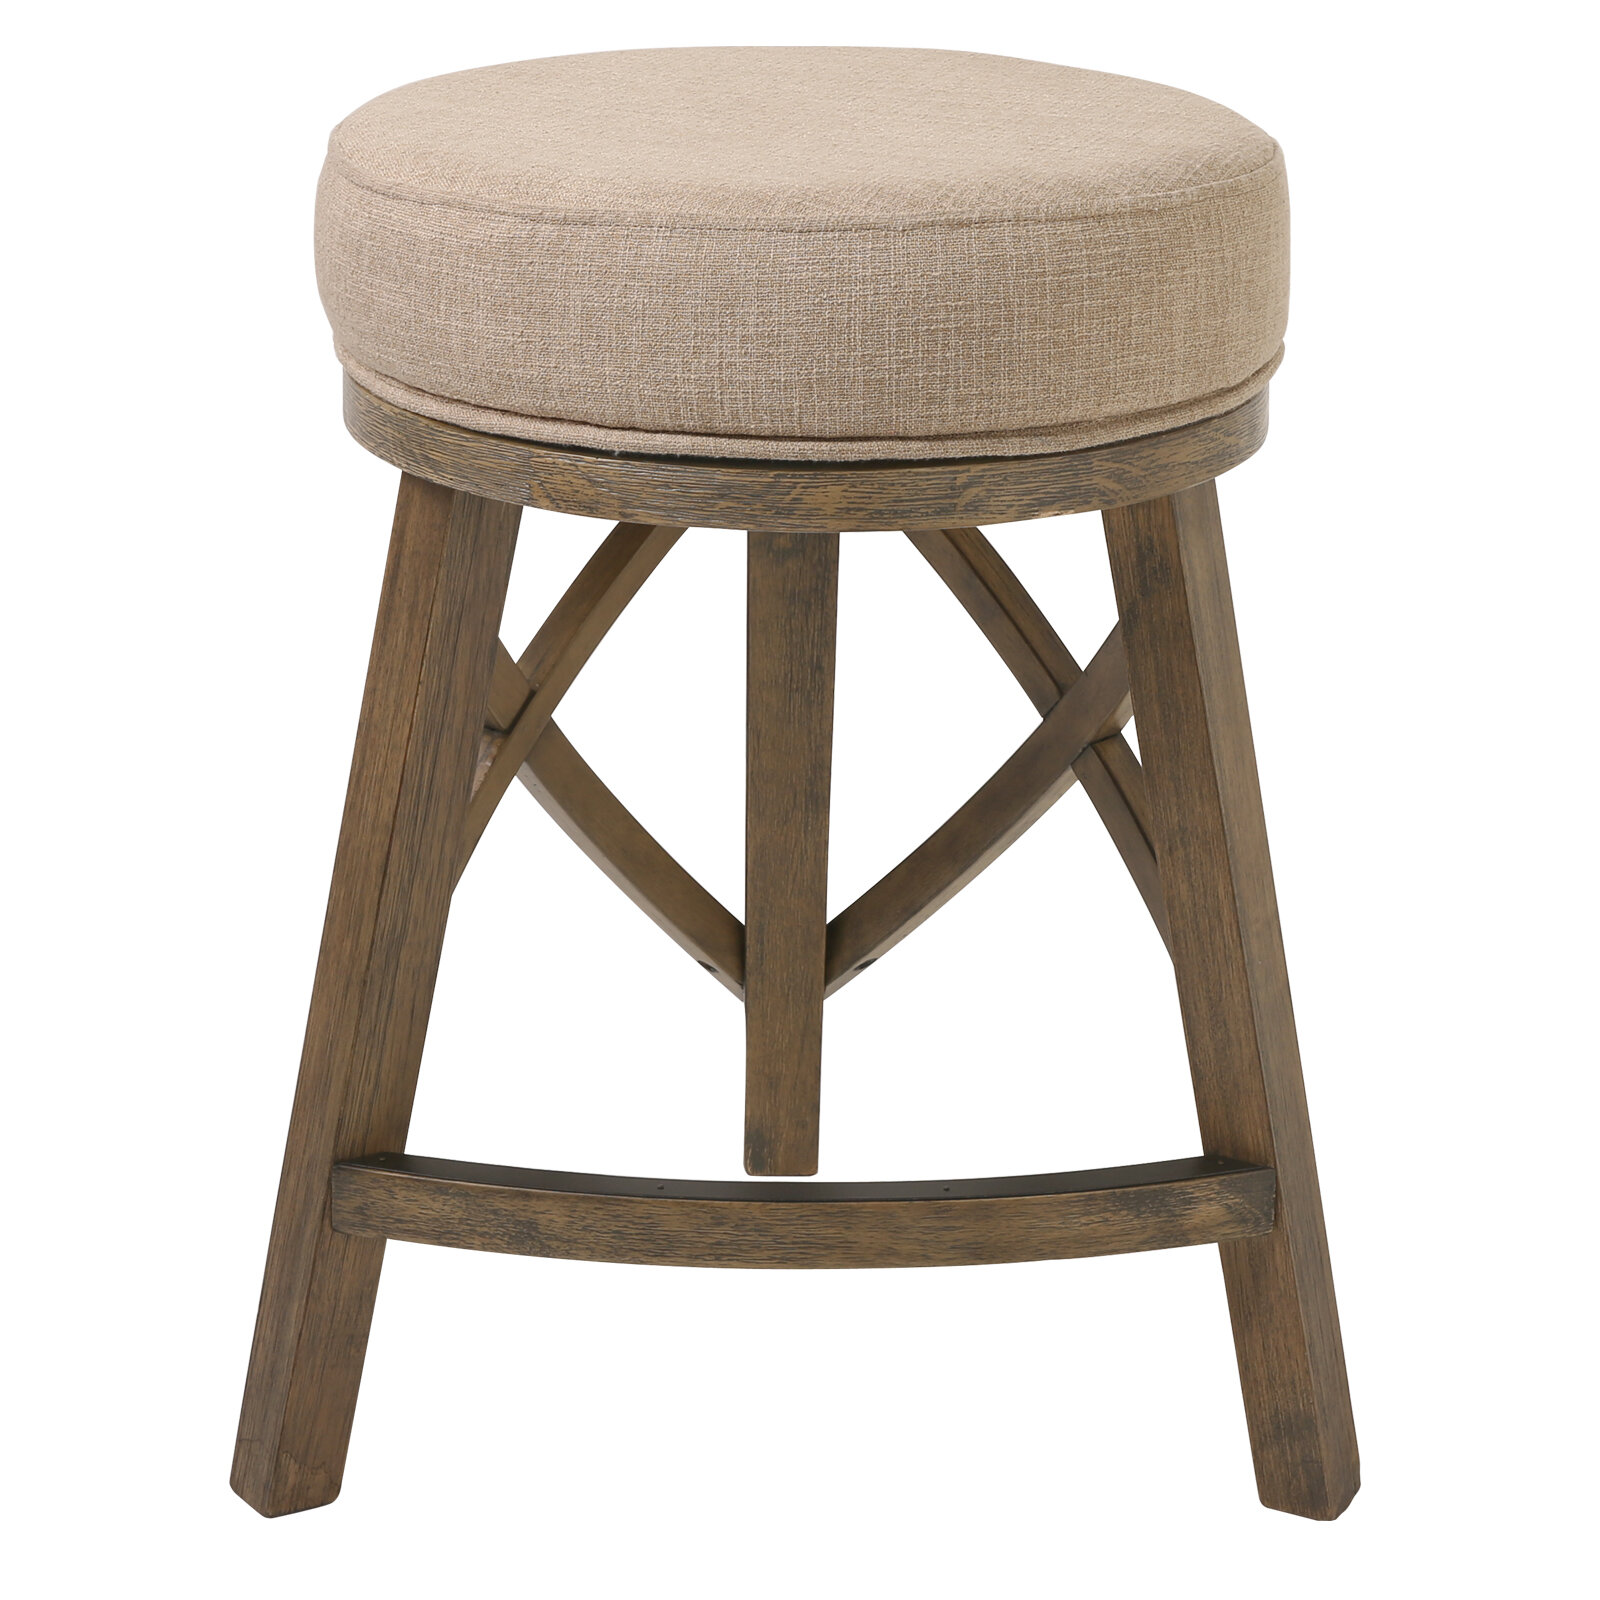 Enjoyable Pleasanton Counter Height 25 Swivel Bar Stool Pabps2019 Chair Design Images Pabps2019Com